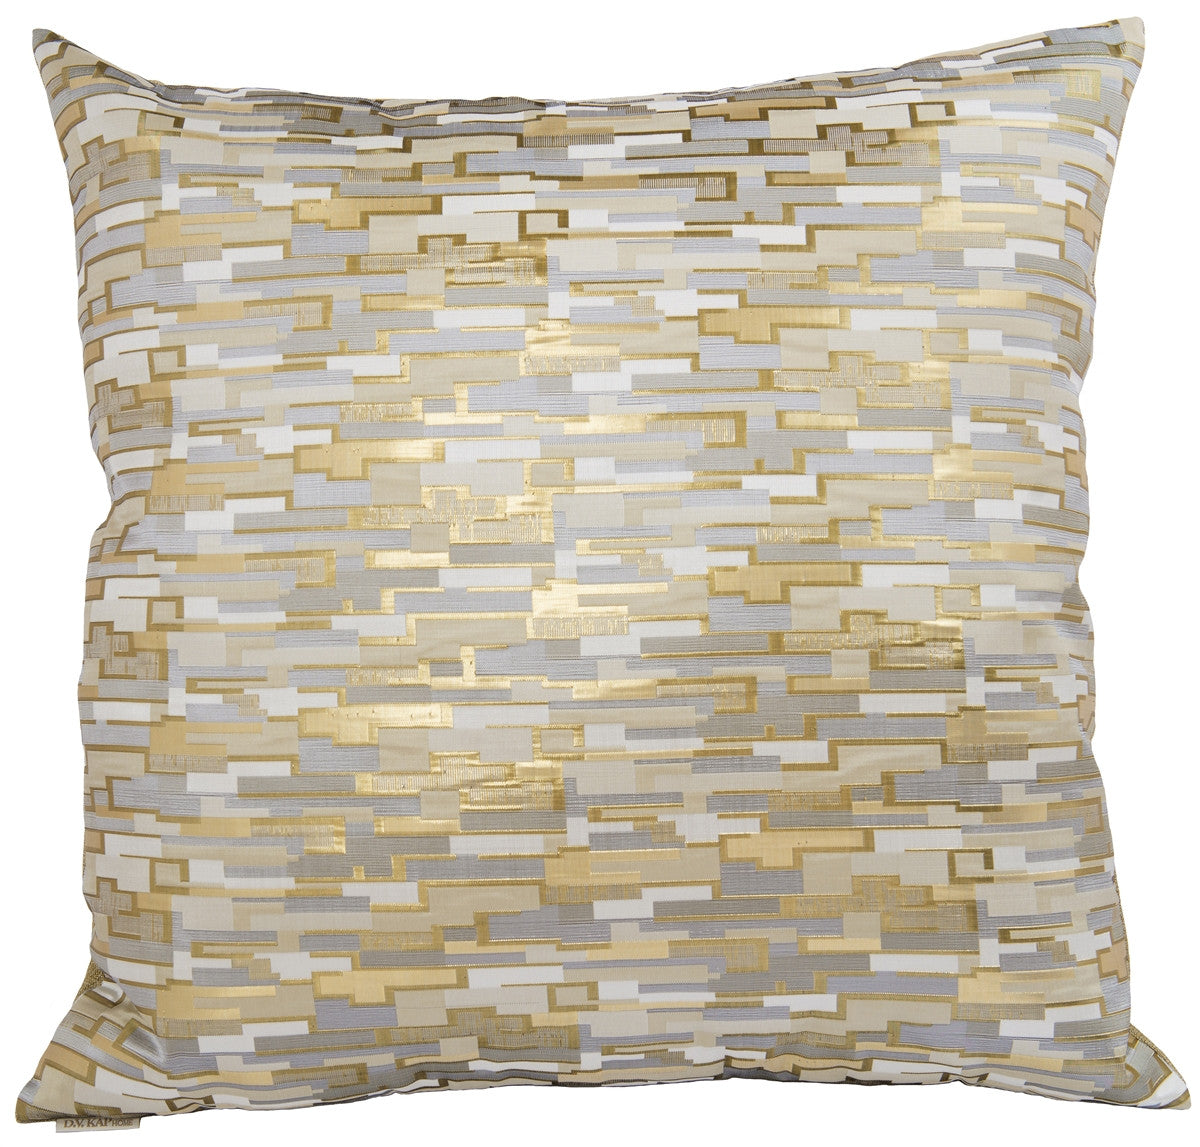 DV Kap Home - Maize Toss Pillow